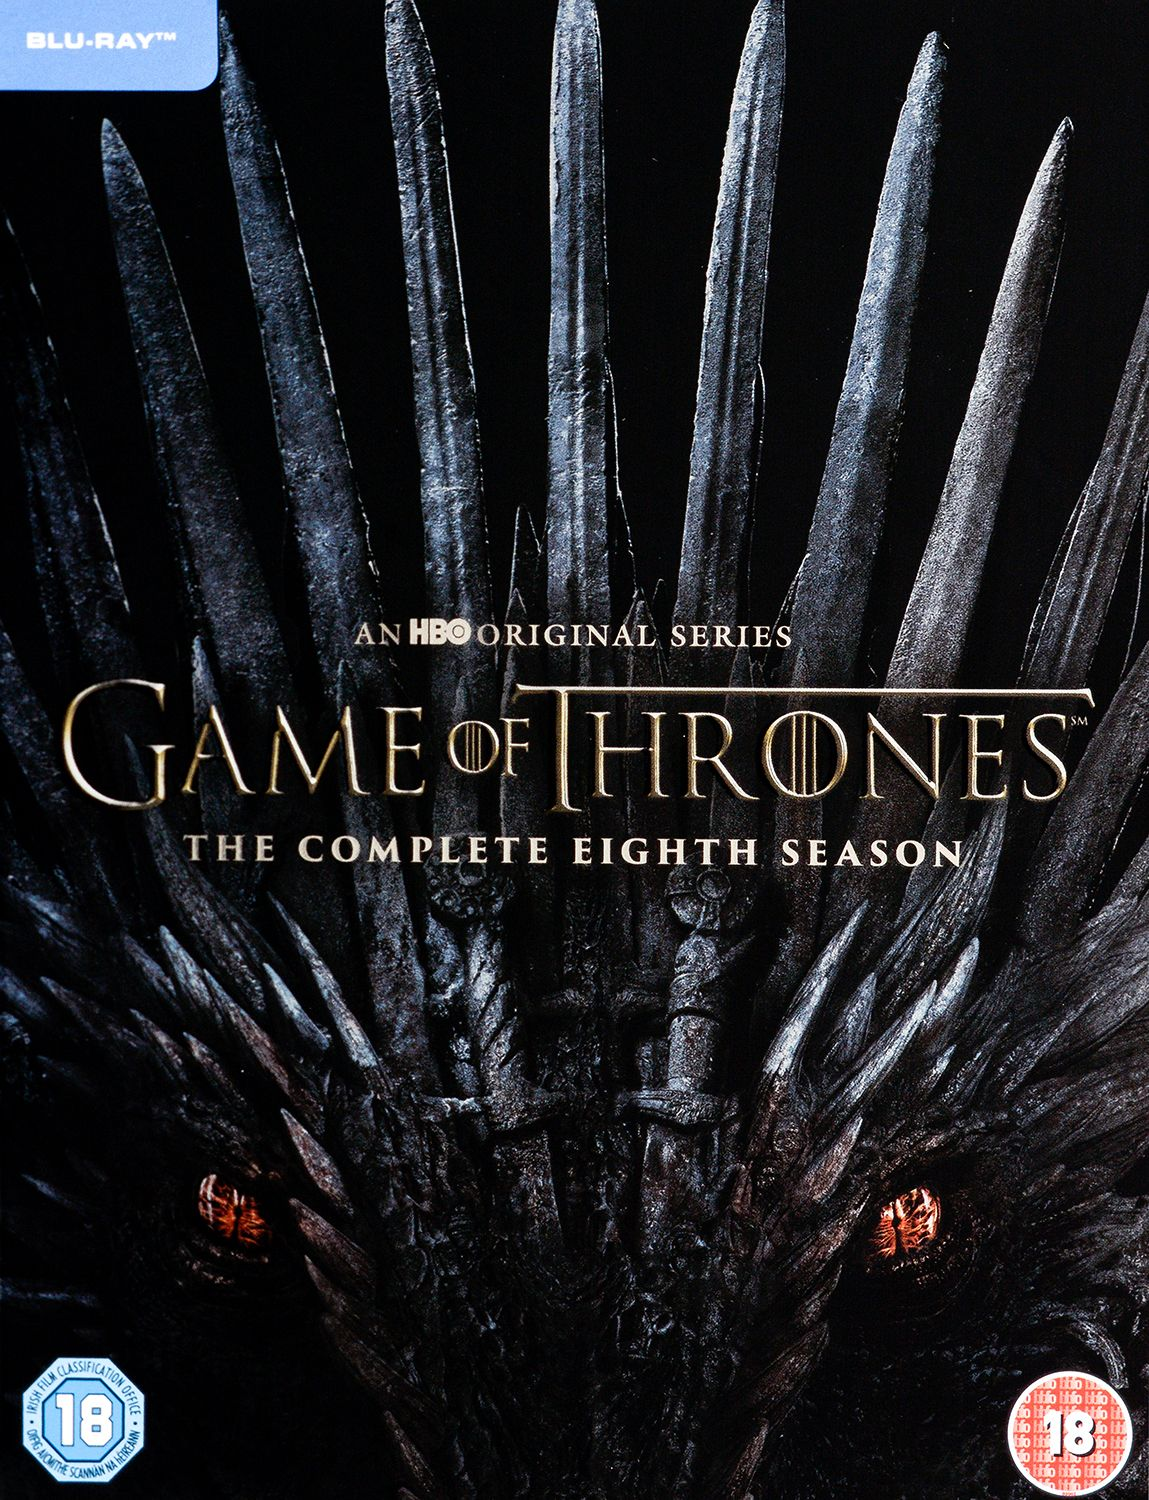 Game of Thrones: Complete Season 8 (Blu-Ray) - 1